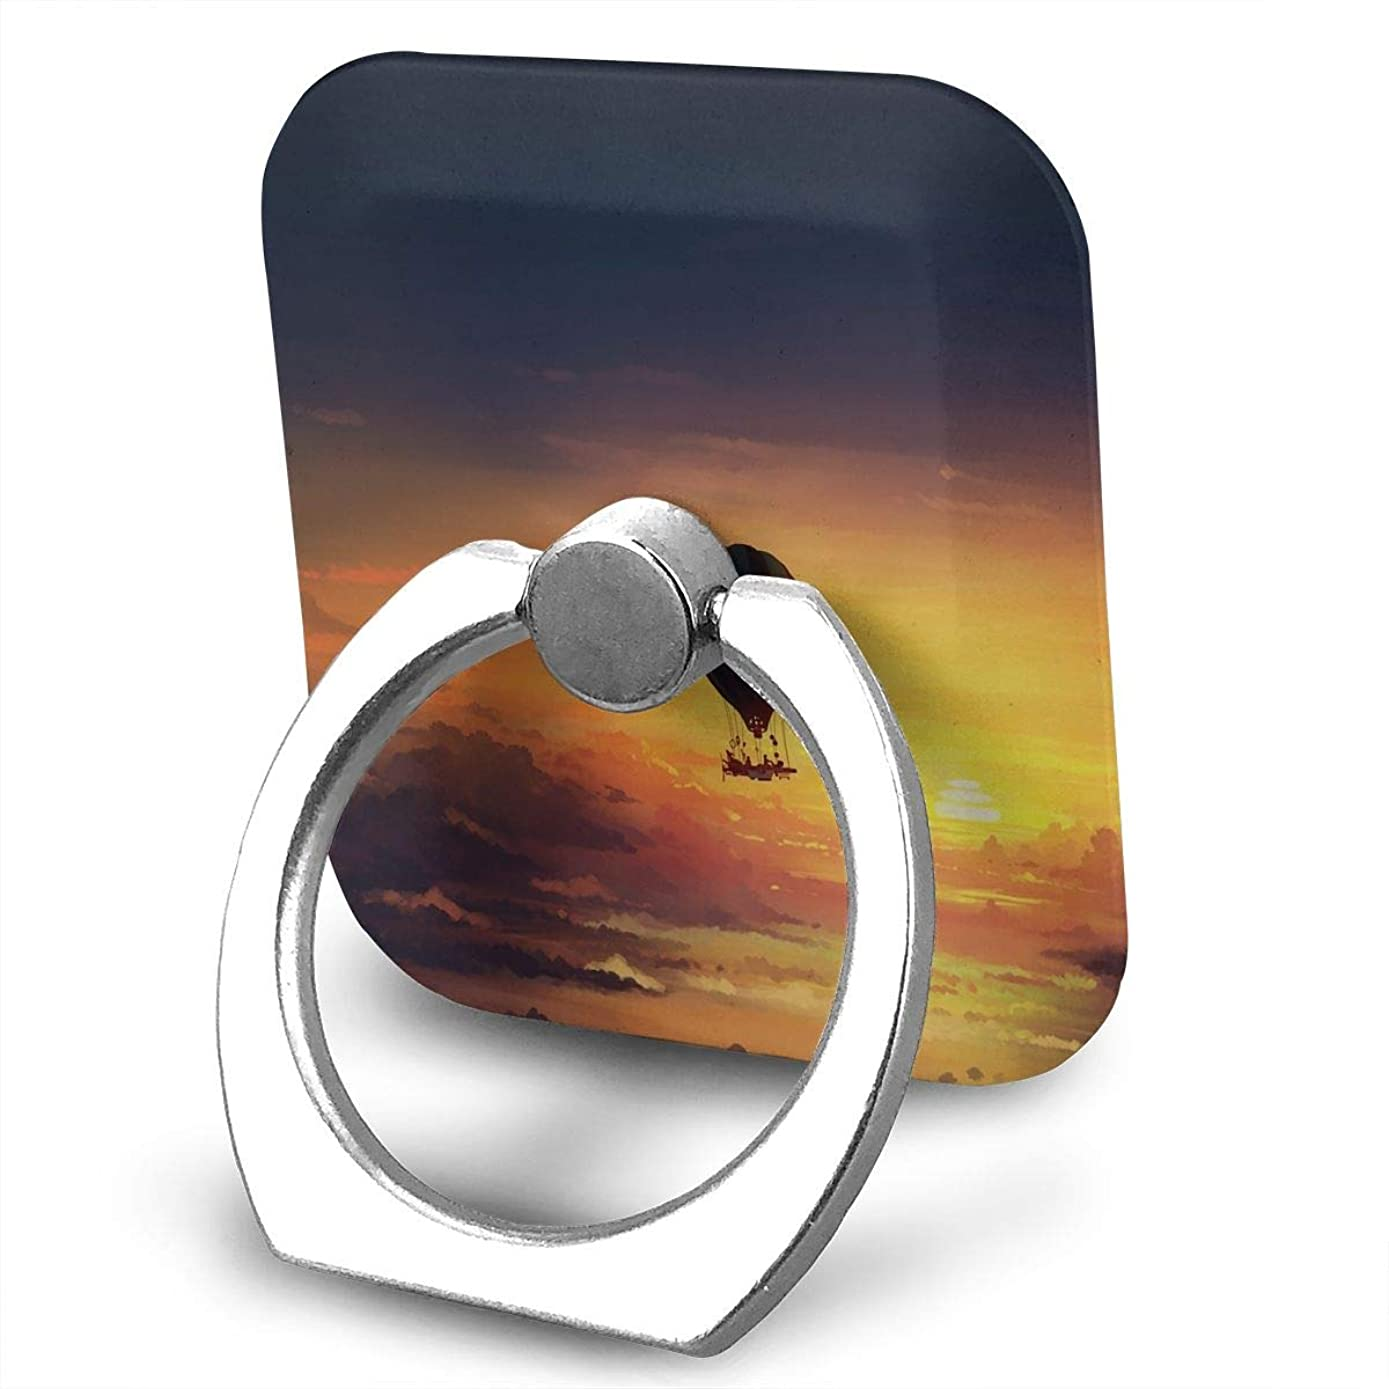 Square Finger Ring Stand 360°Rotation Phone Holder Grip Balloon Sunset Sky Kickstand for Smartphones and Ipad